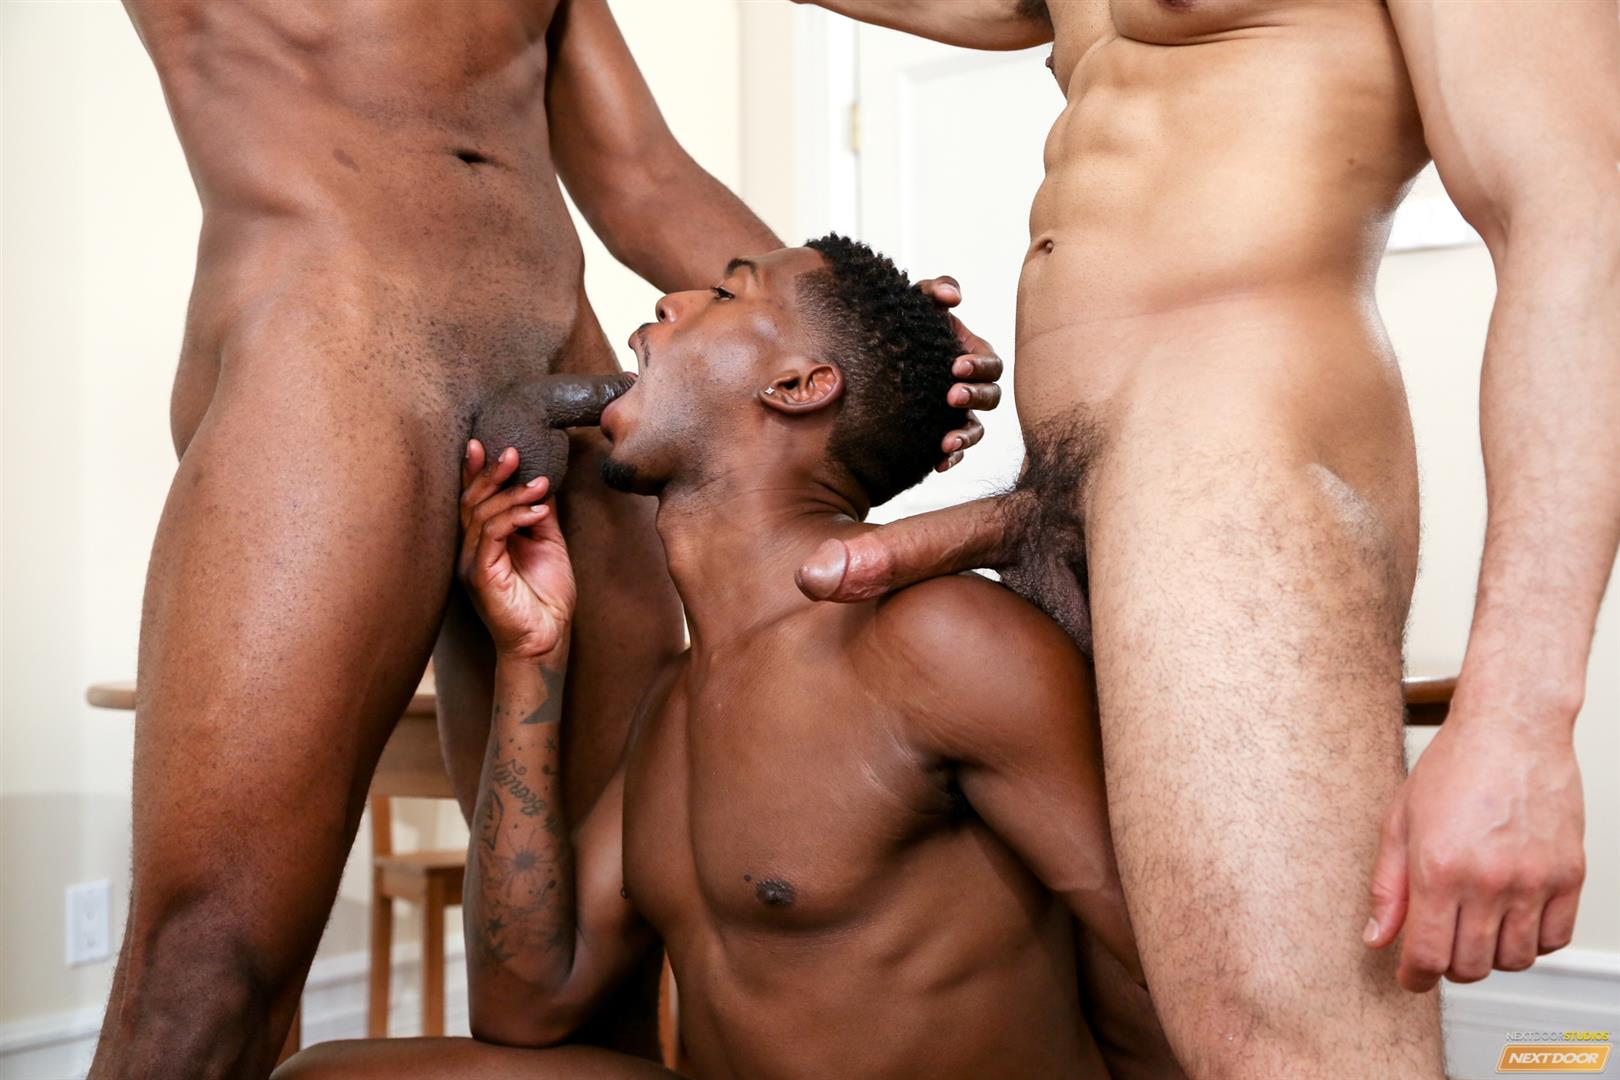 Next-Door-Ebony-Krave-Moore-and-Andre-Donovan-and-Rex-Cobra-Big-Black-Cock-Amateur-Gay-Porn-09 Three Black Guys Playing Strip Dominoes With Their Big Black Cocks